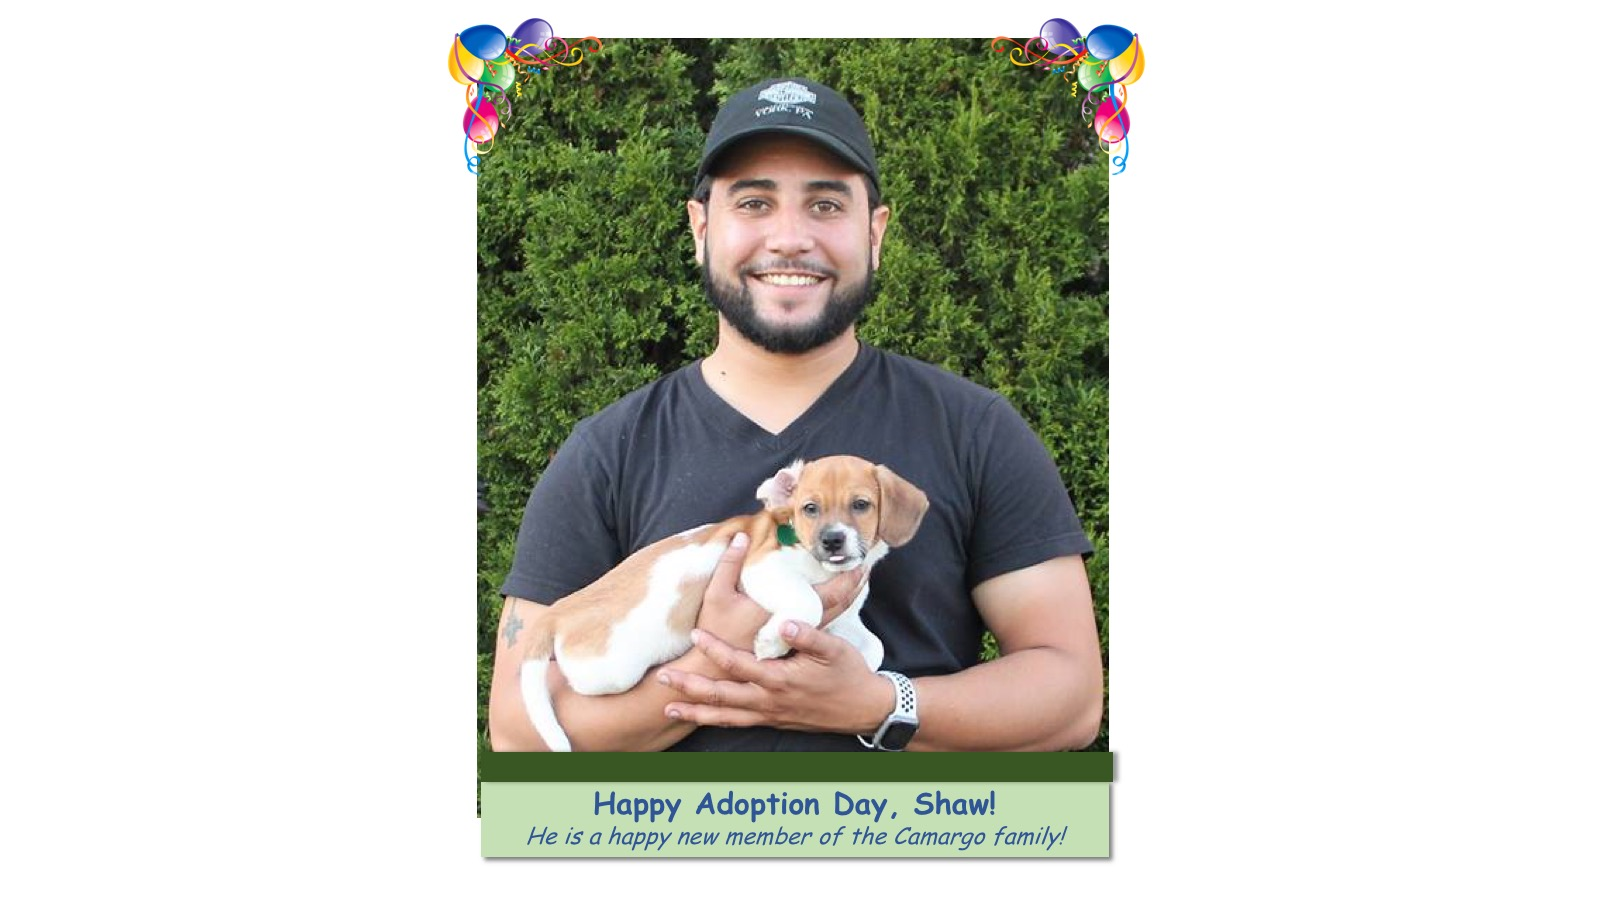 Shaw_Adoption_Photo_201824167.jpg